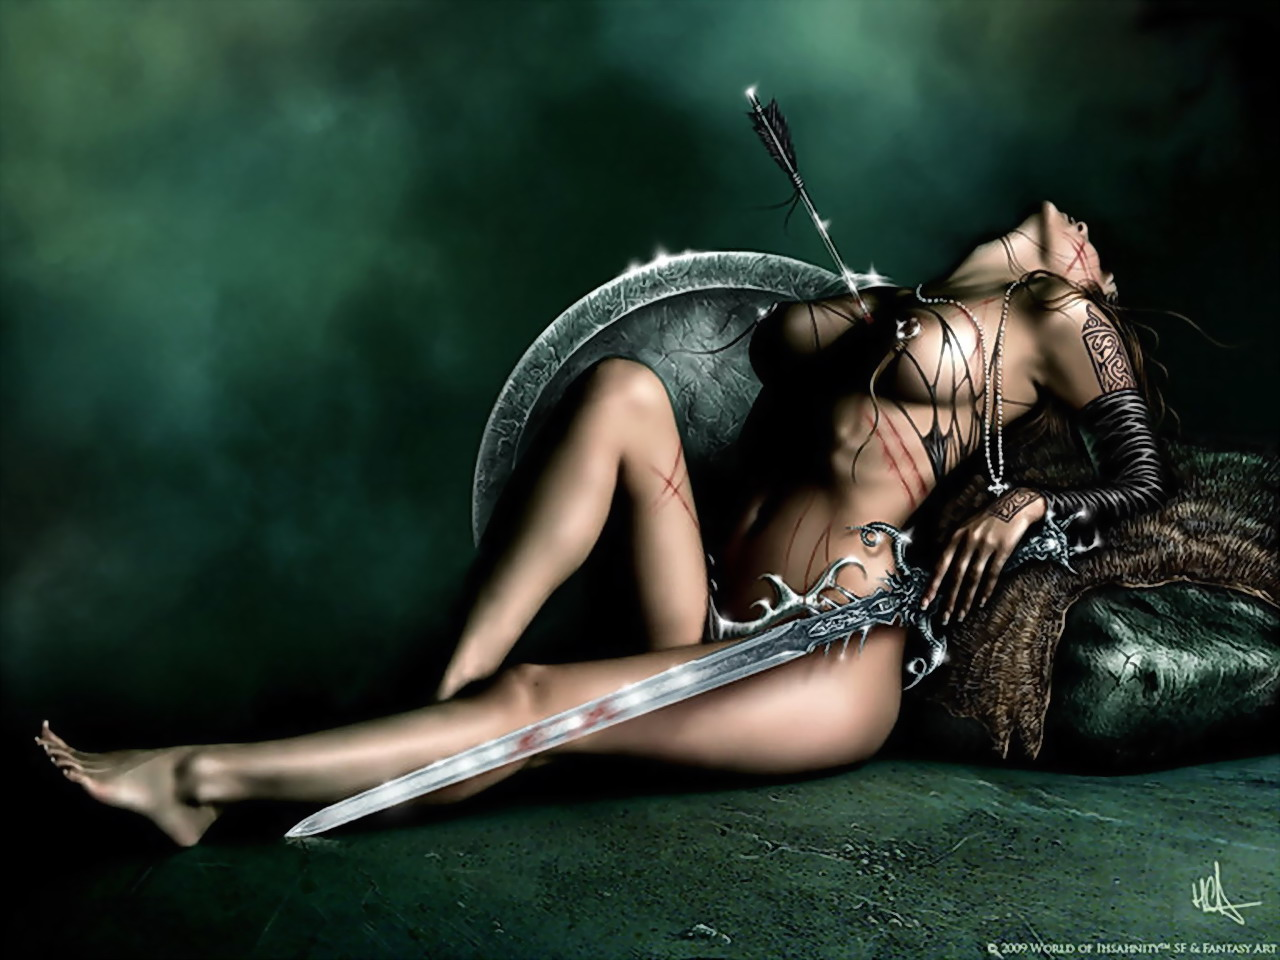 This Colombiana erotic woman warrior fantasy art crap